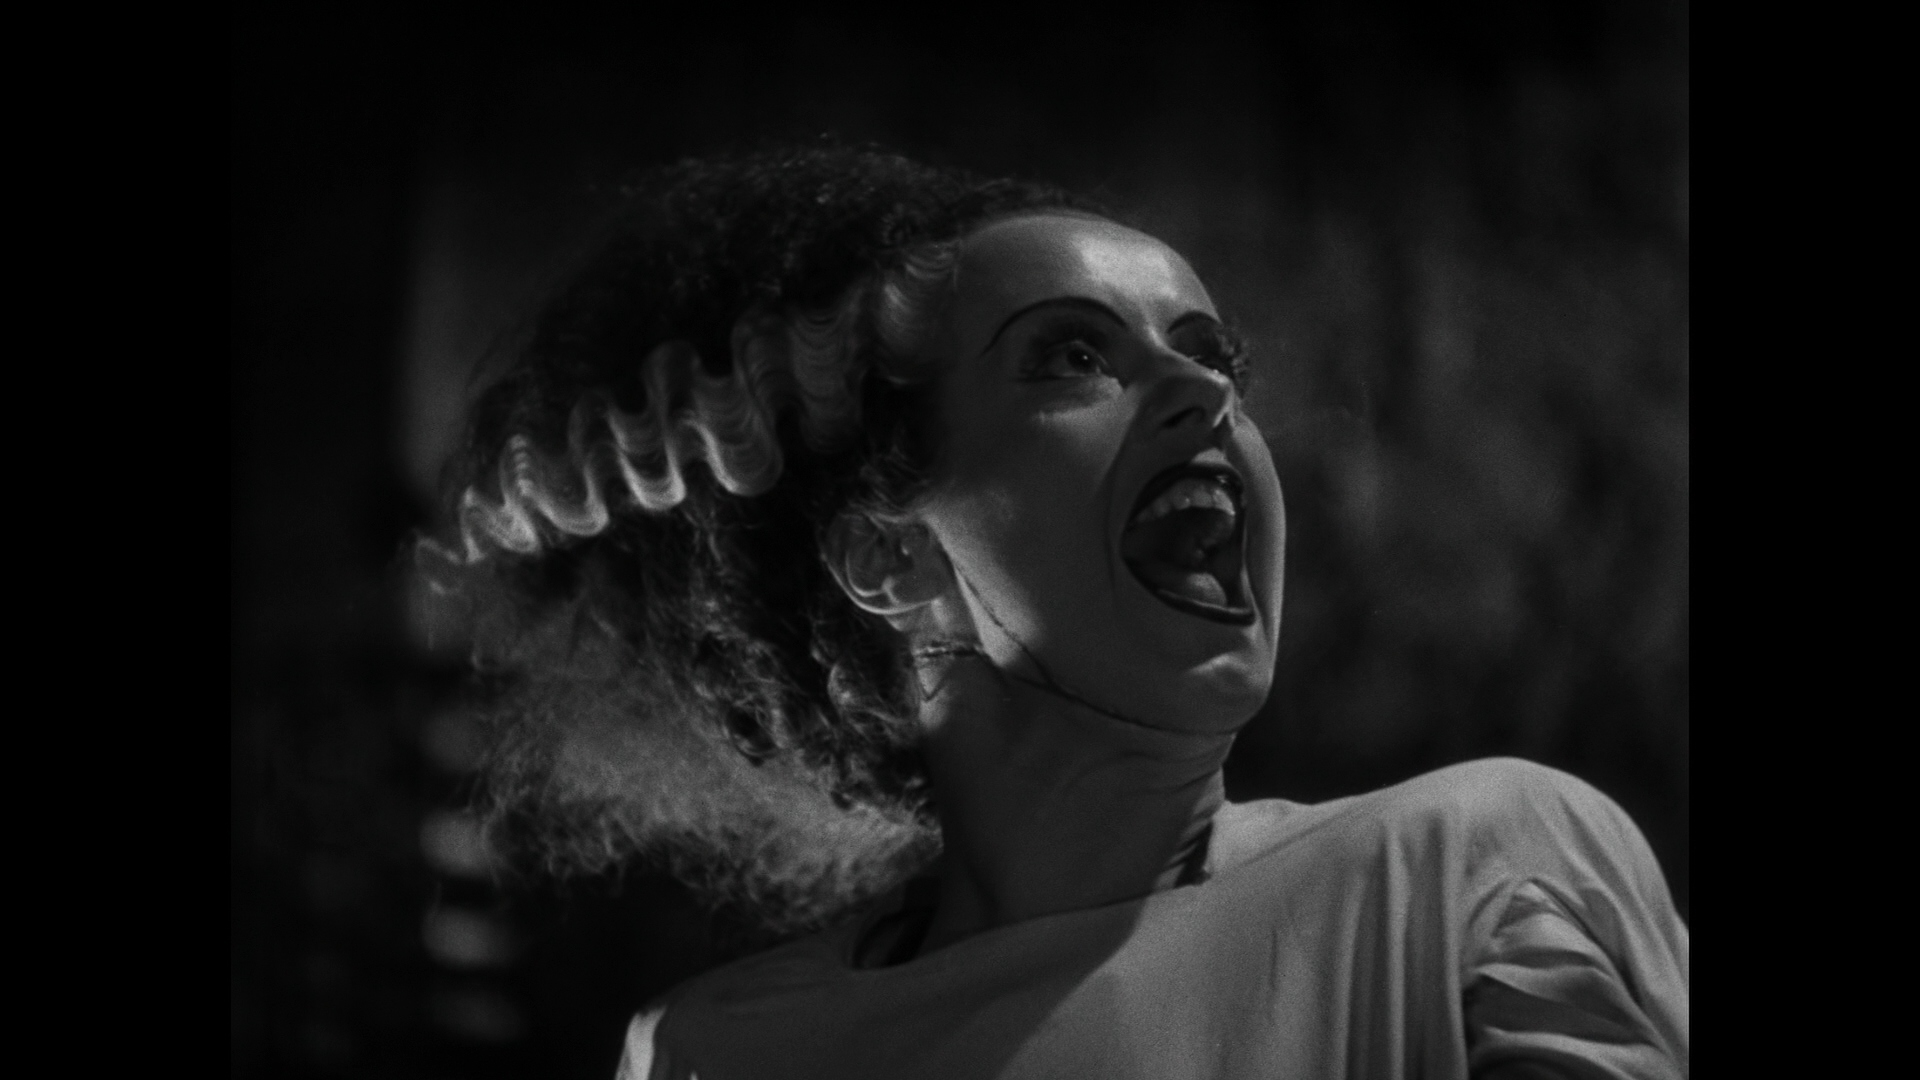 Universal Movie Monsters Wallpaper Review universal classic 1920x1080